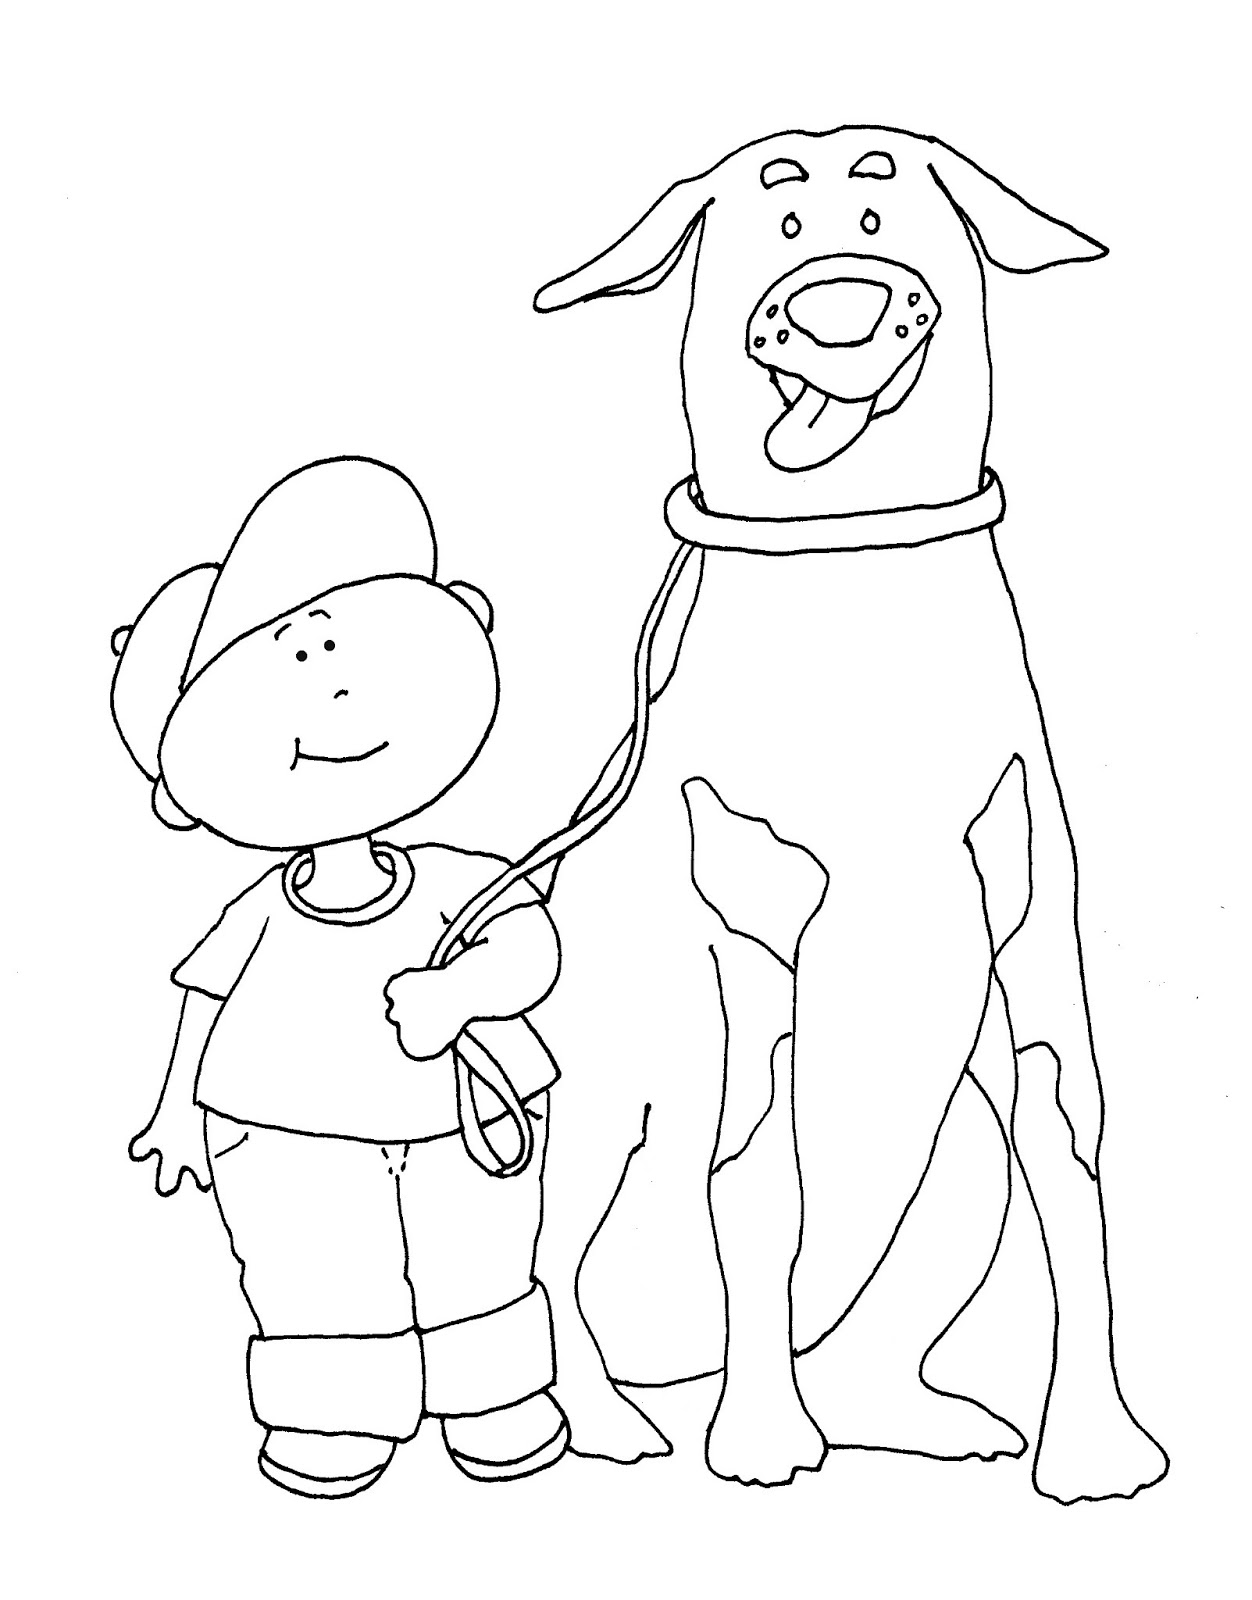 a boy and his dog coloring pages - photo #26